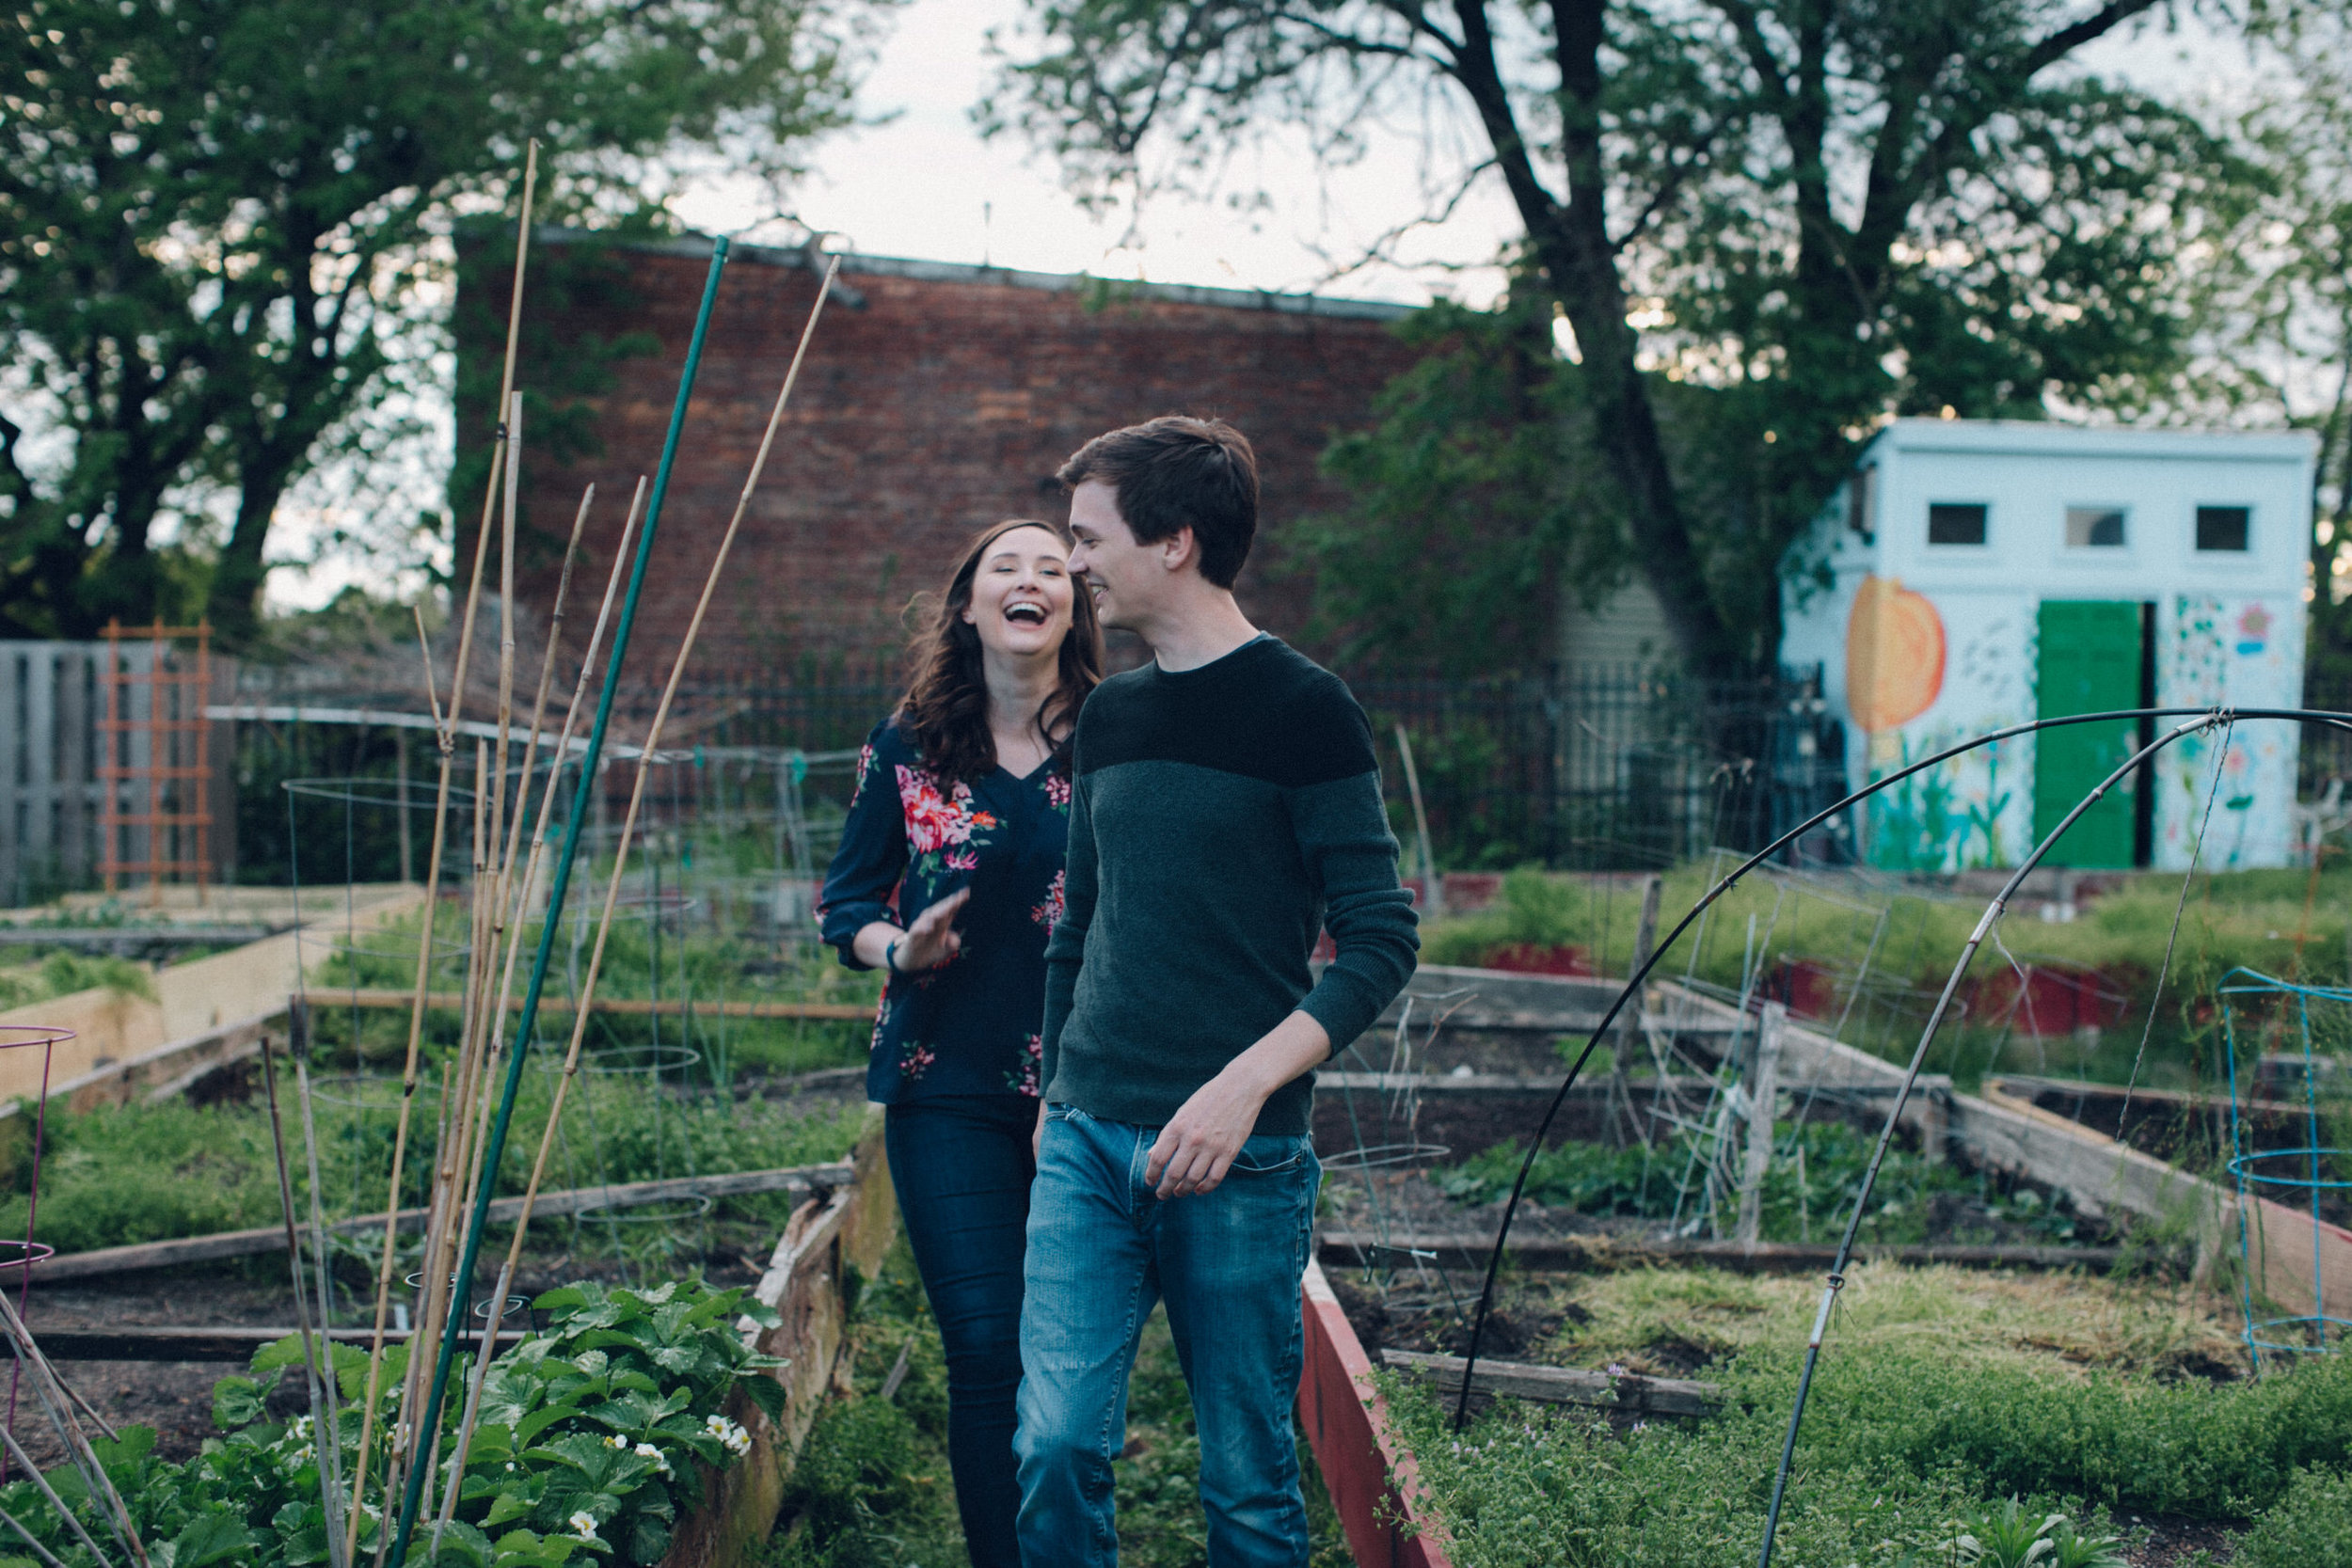 columbia heights petworth engagement session.jpg